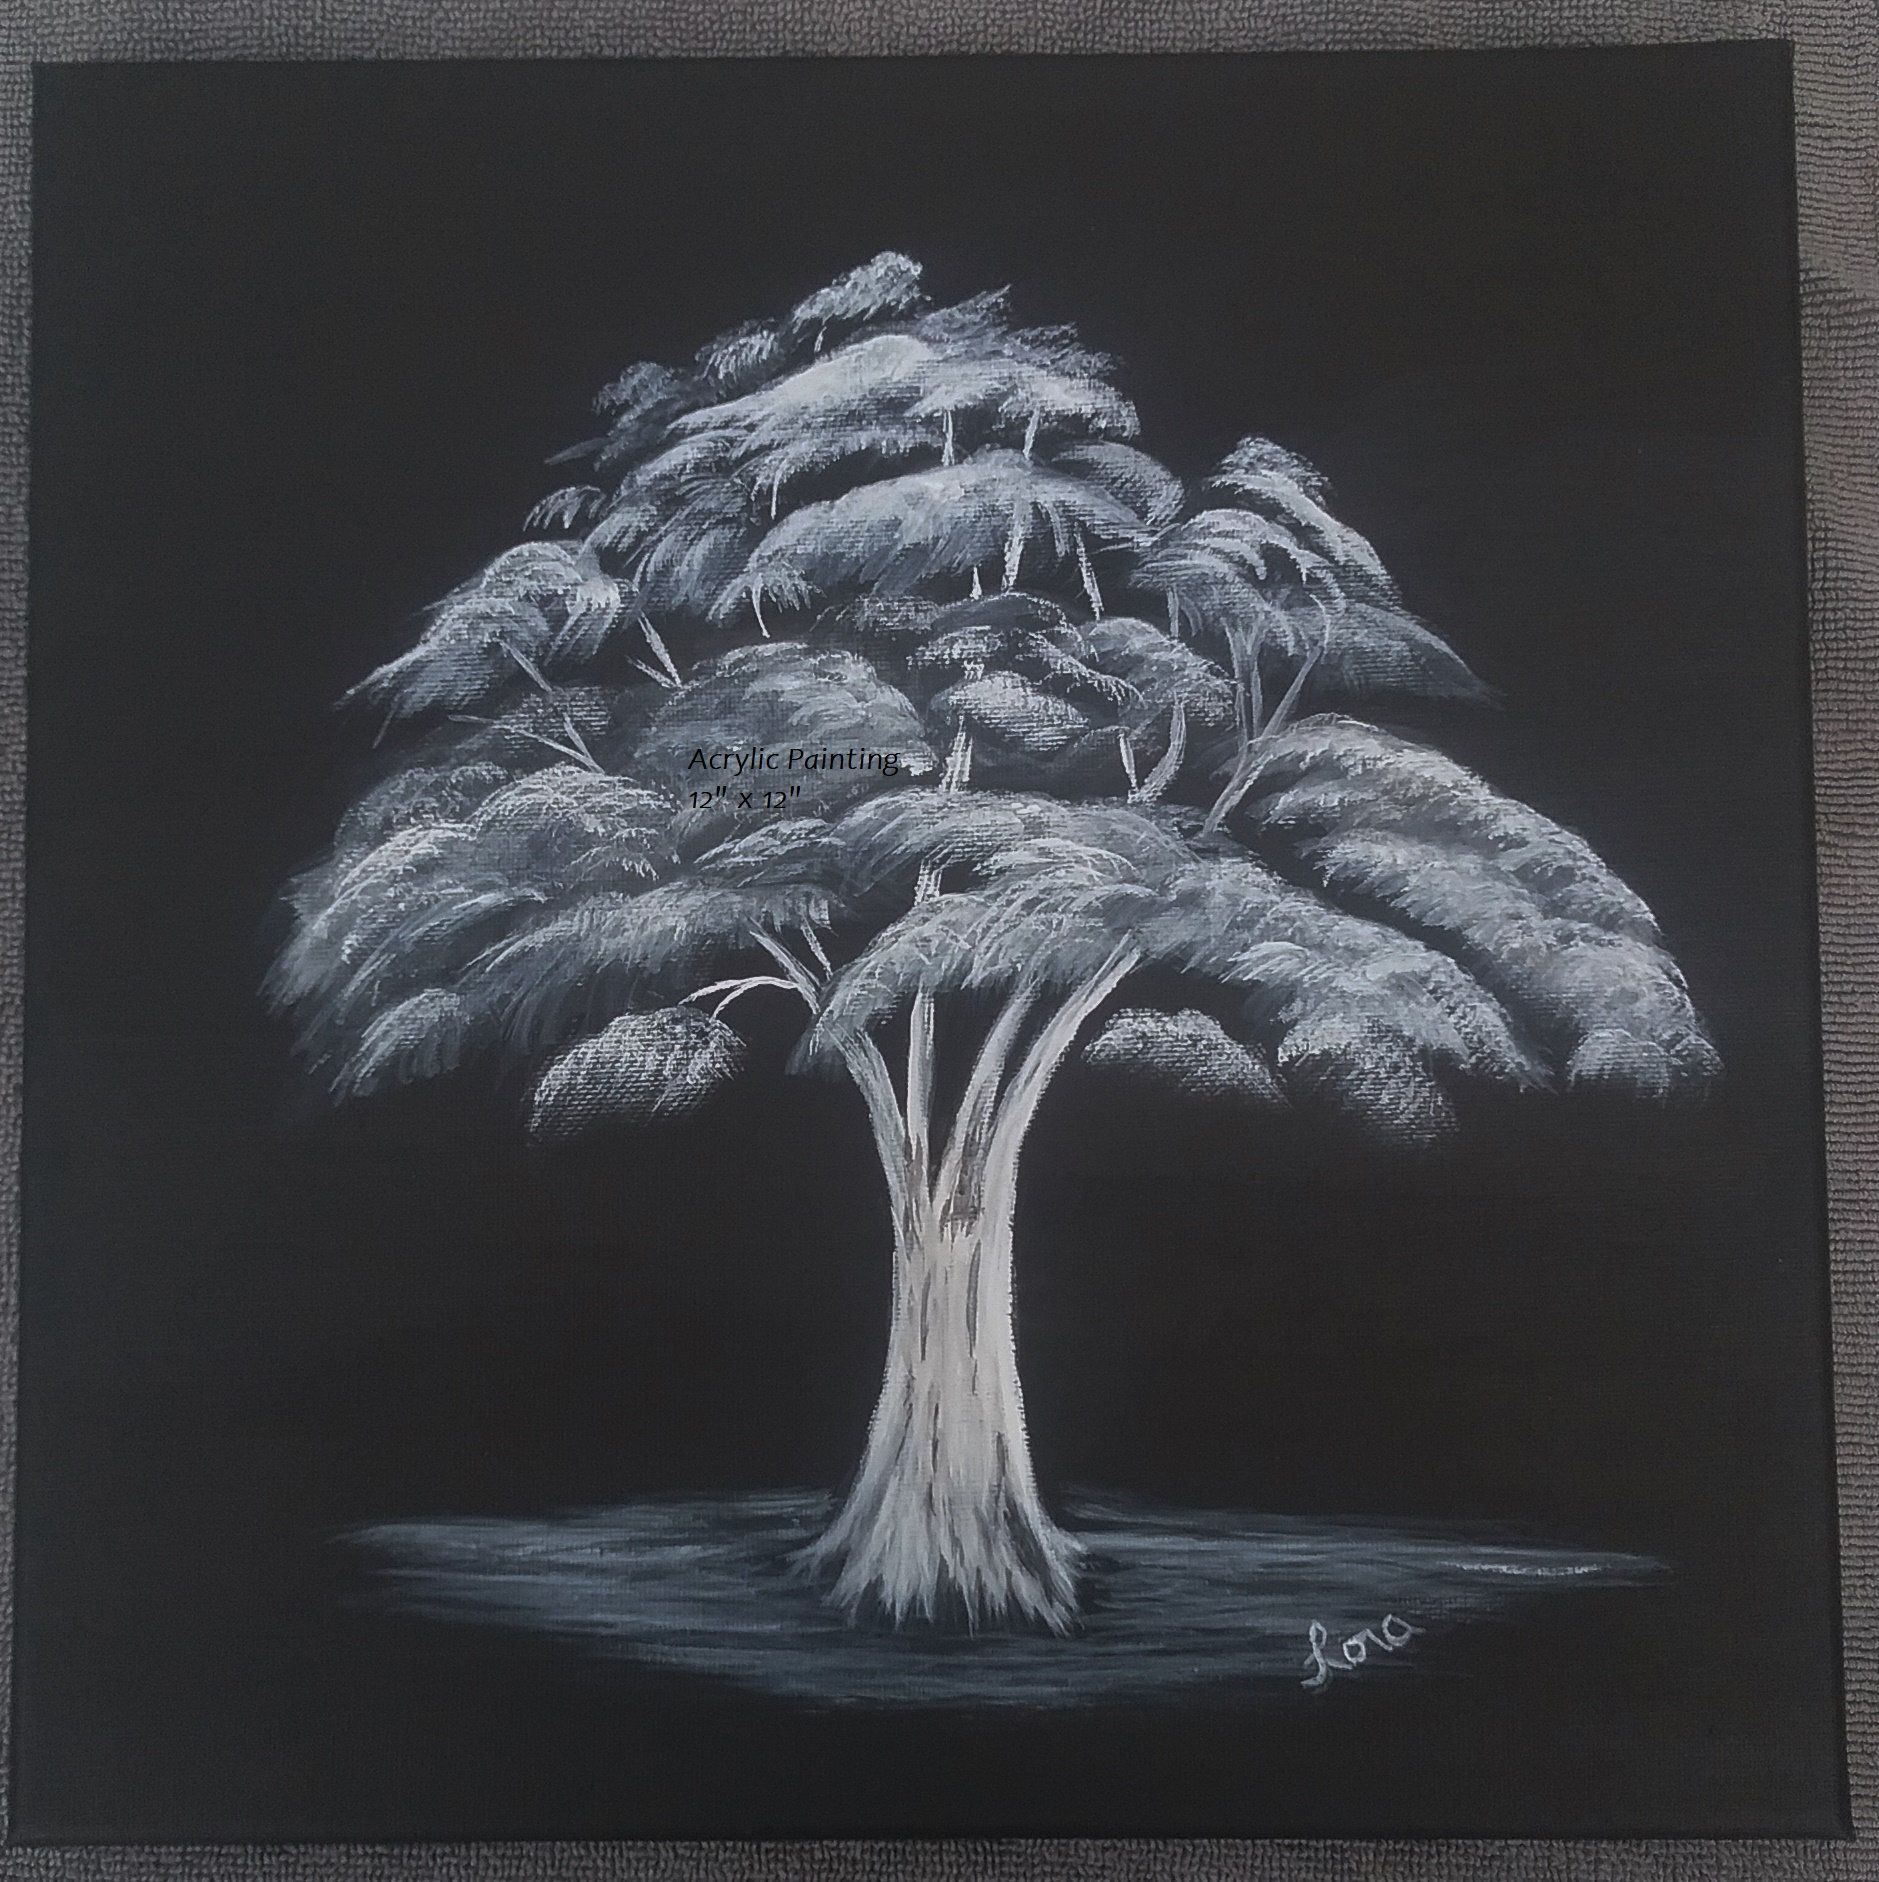 Acrylic Black And White Canvas Painting Original Acrylic Etsy Black Background Painting Black And White Canvas Black Canvas Paintings